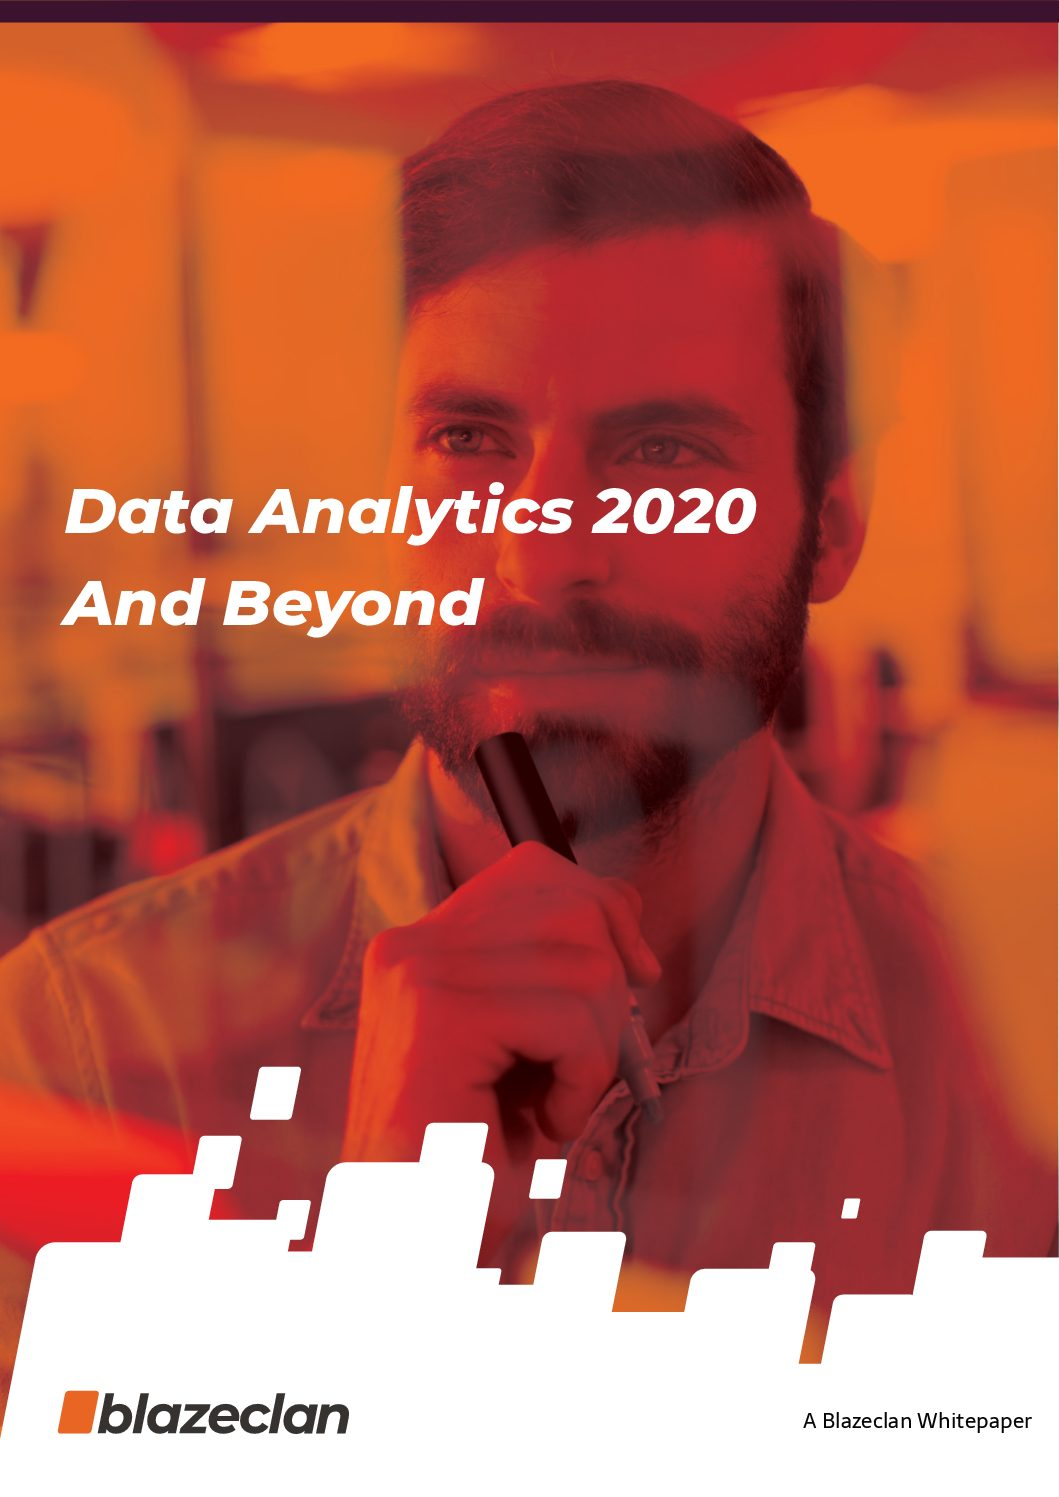 Data Analytics 2020 And Beyond